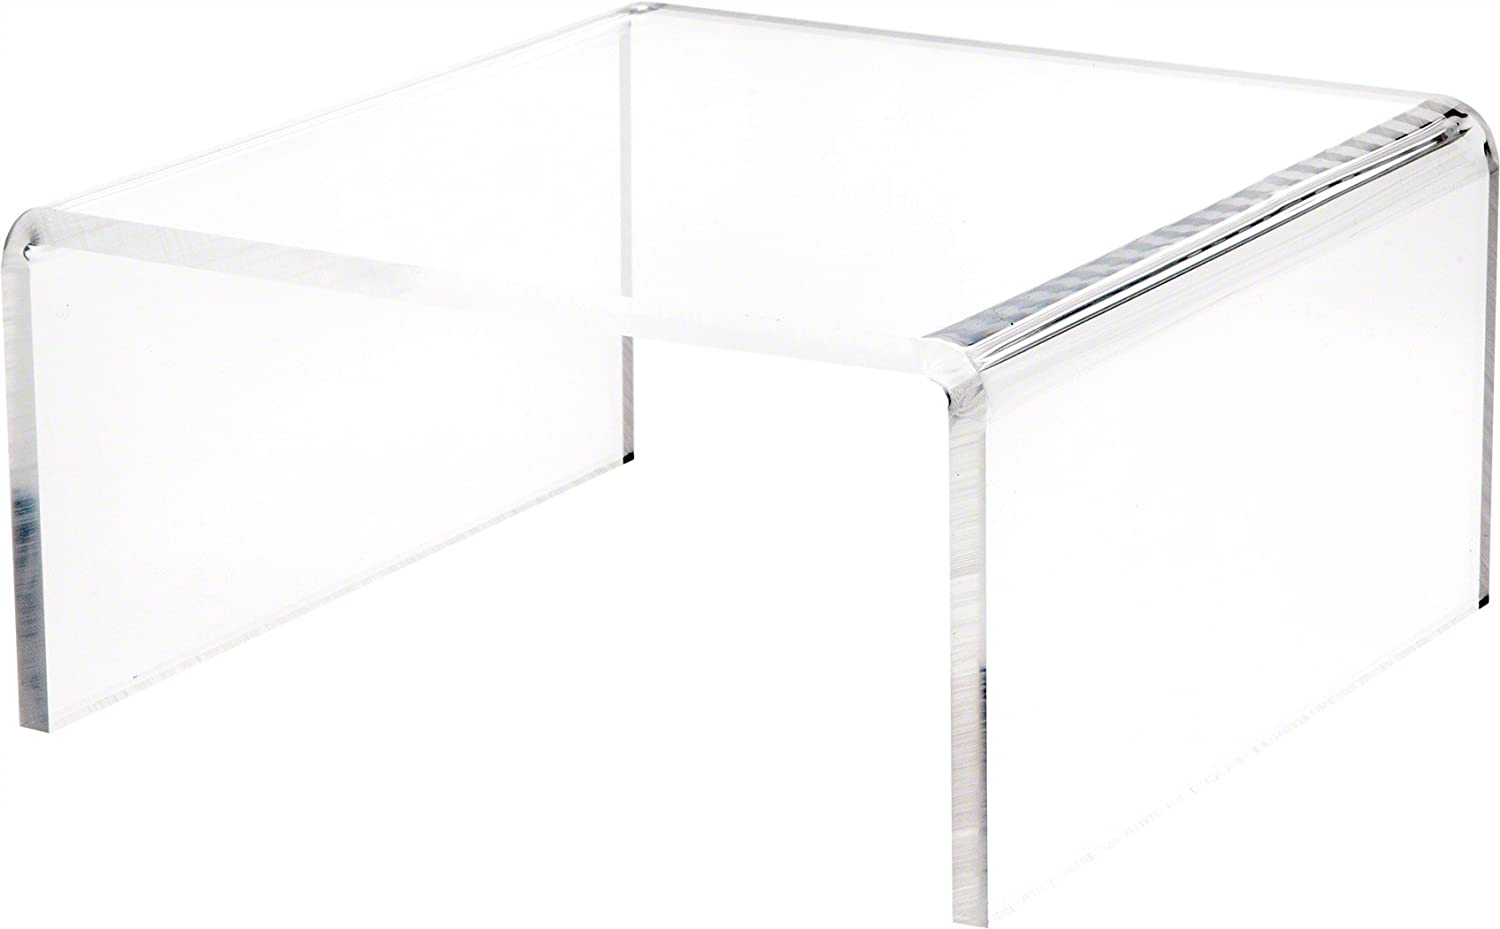 Plymor Brand Clear Acrylic Short Square Riser, 5  H x 10  W x 10  D (3 8  Thick)